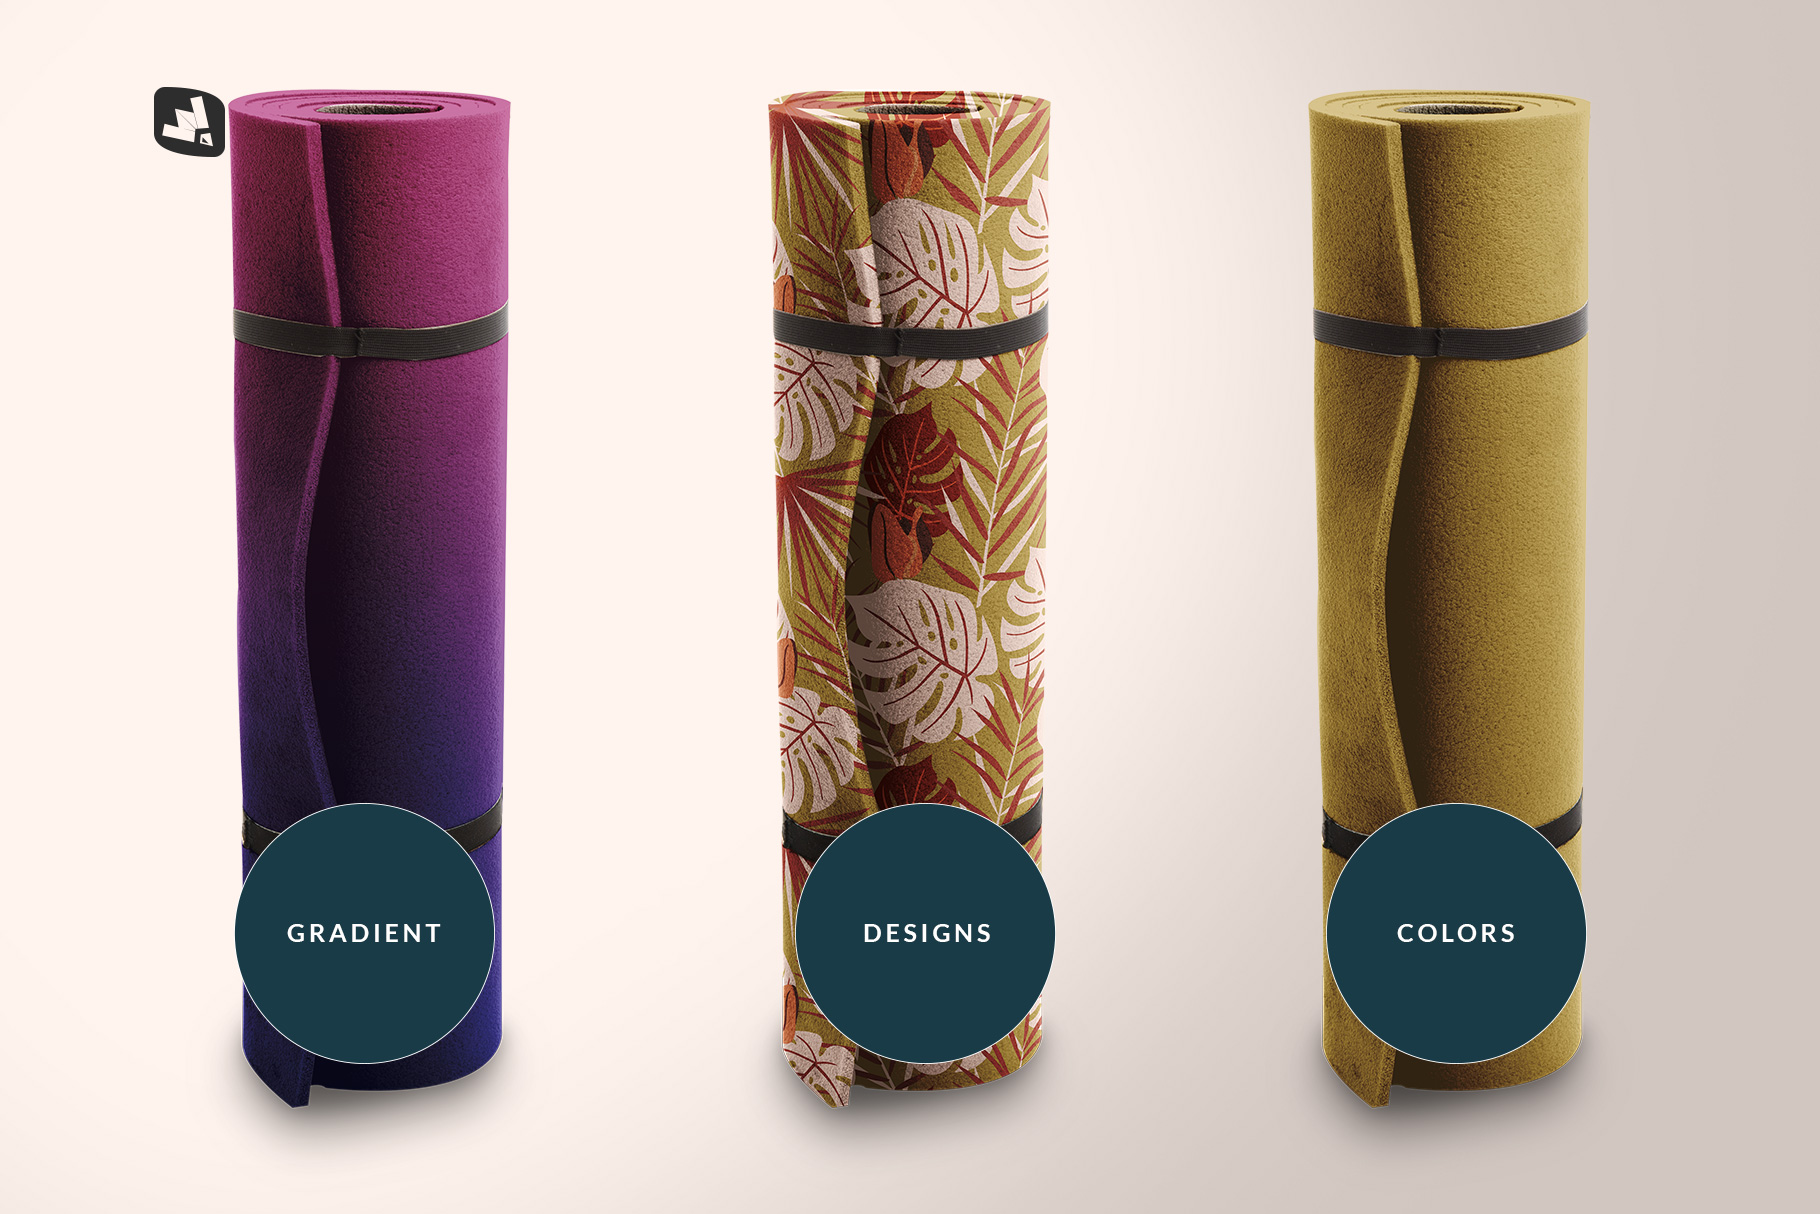 types of the rolled up yoga mat set mockup